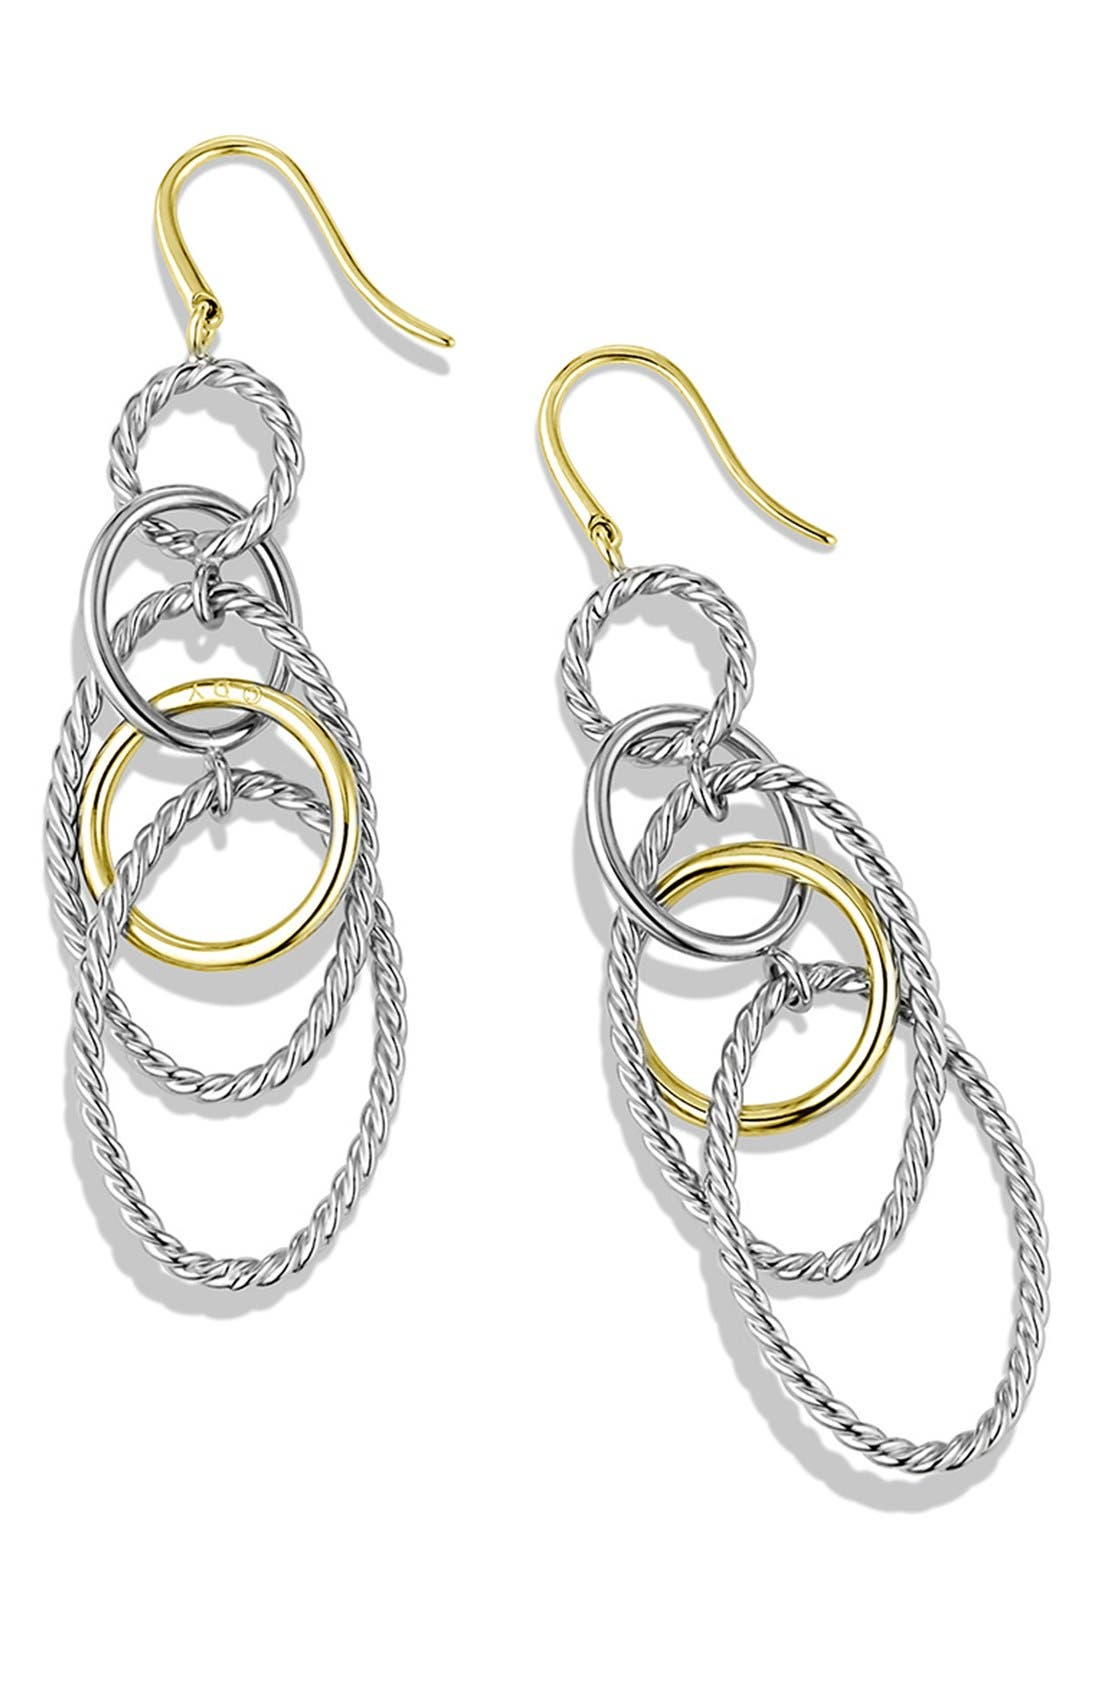 'Mobile' Large Link Earrings with Gold,                             Alternate thumbnail 2, color,